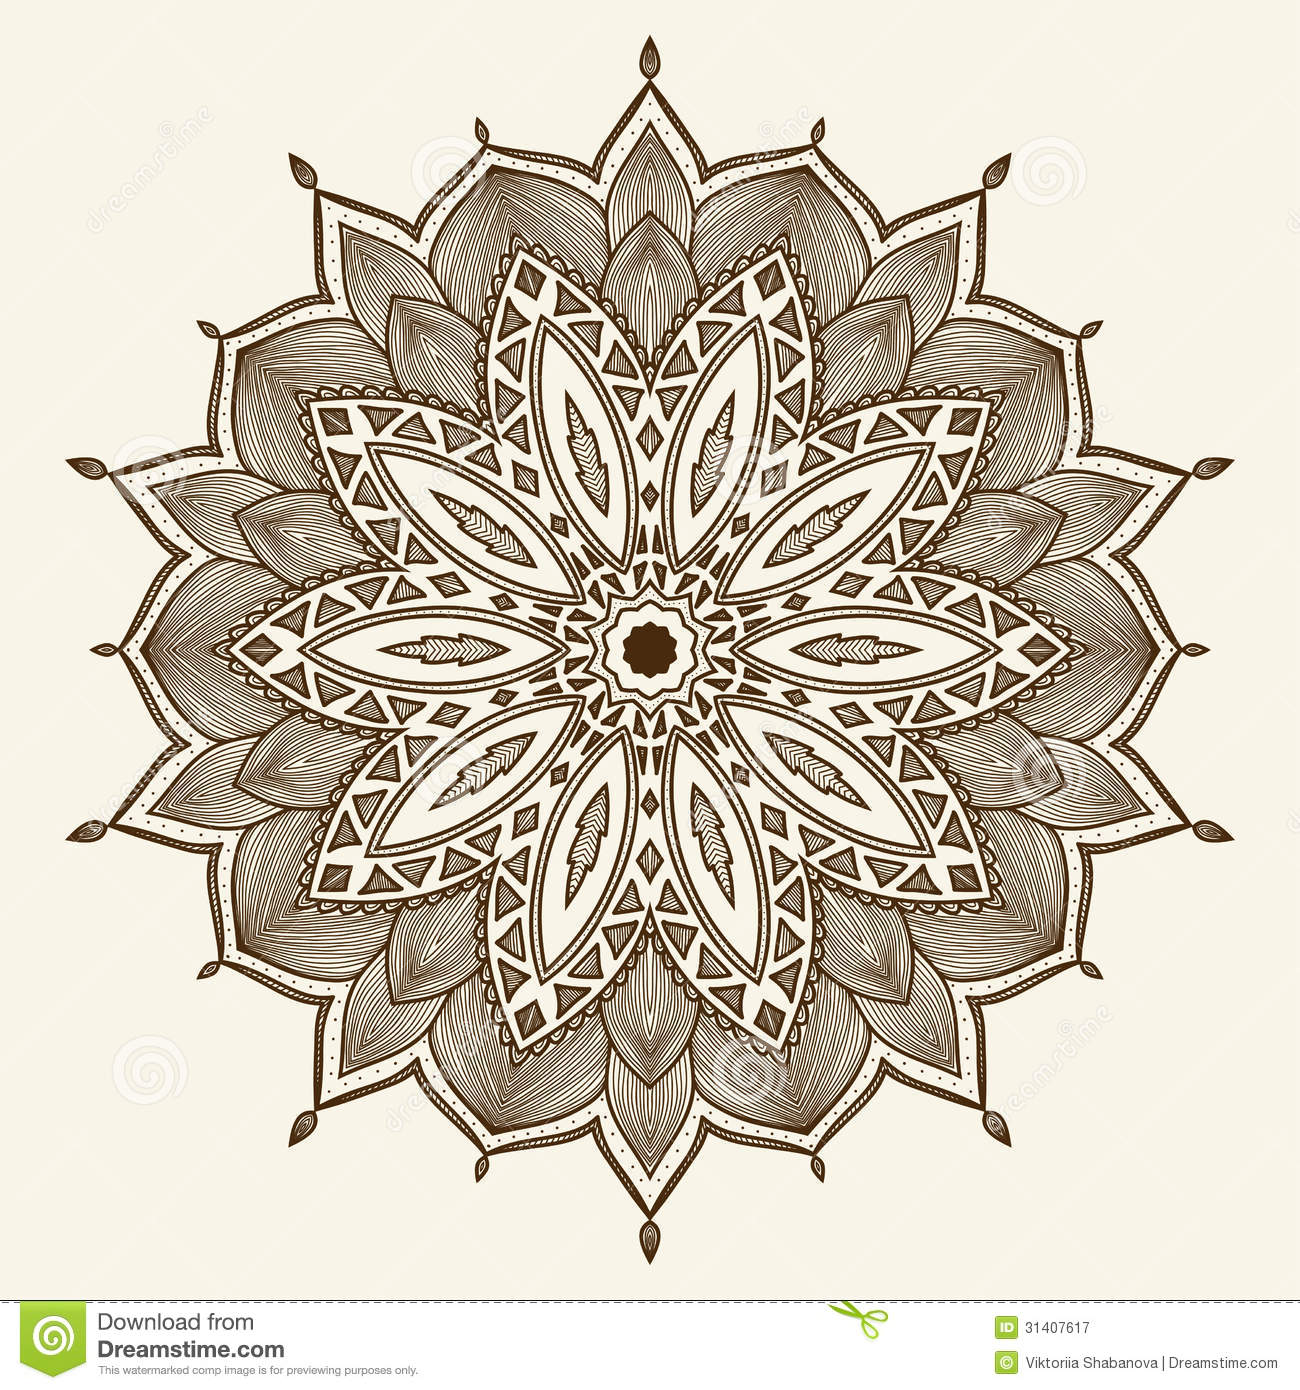 Free ornamental mandala vector download free vector art stock - Mandala Beautiful Hand Drawn Flower Royalty Free Stock